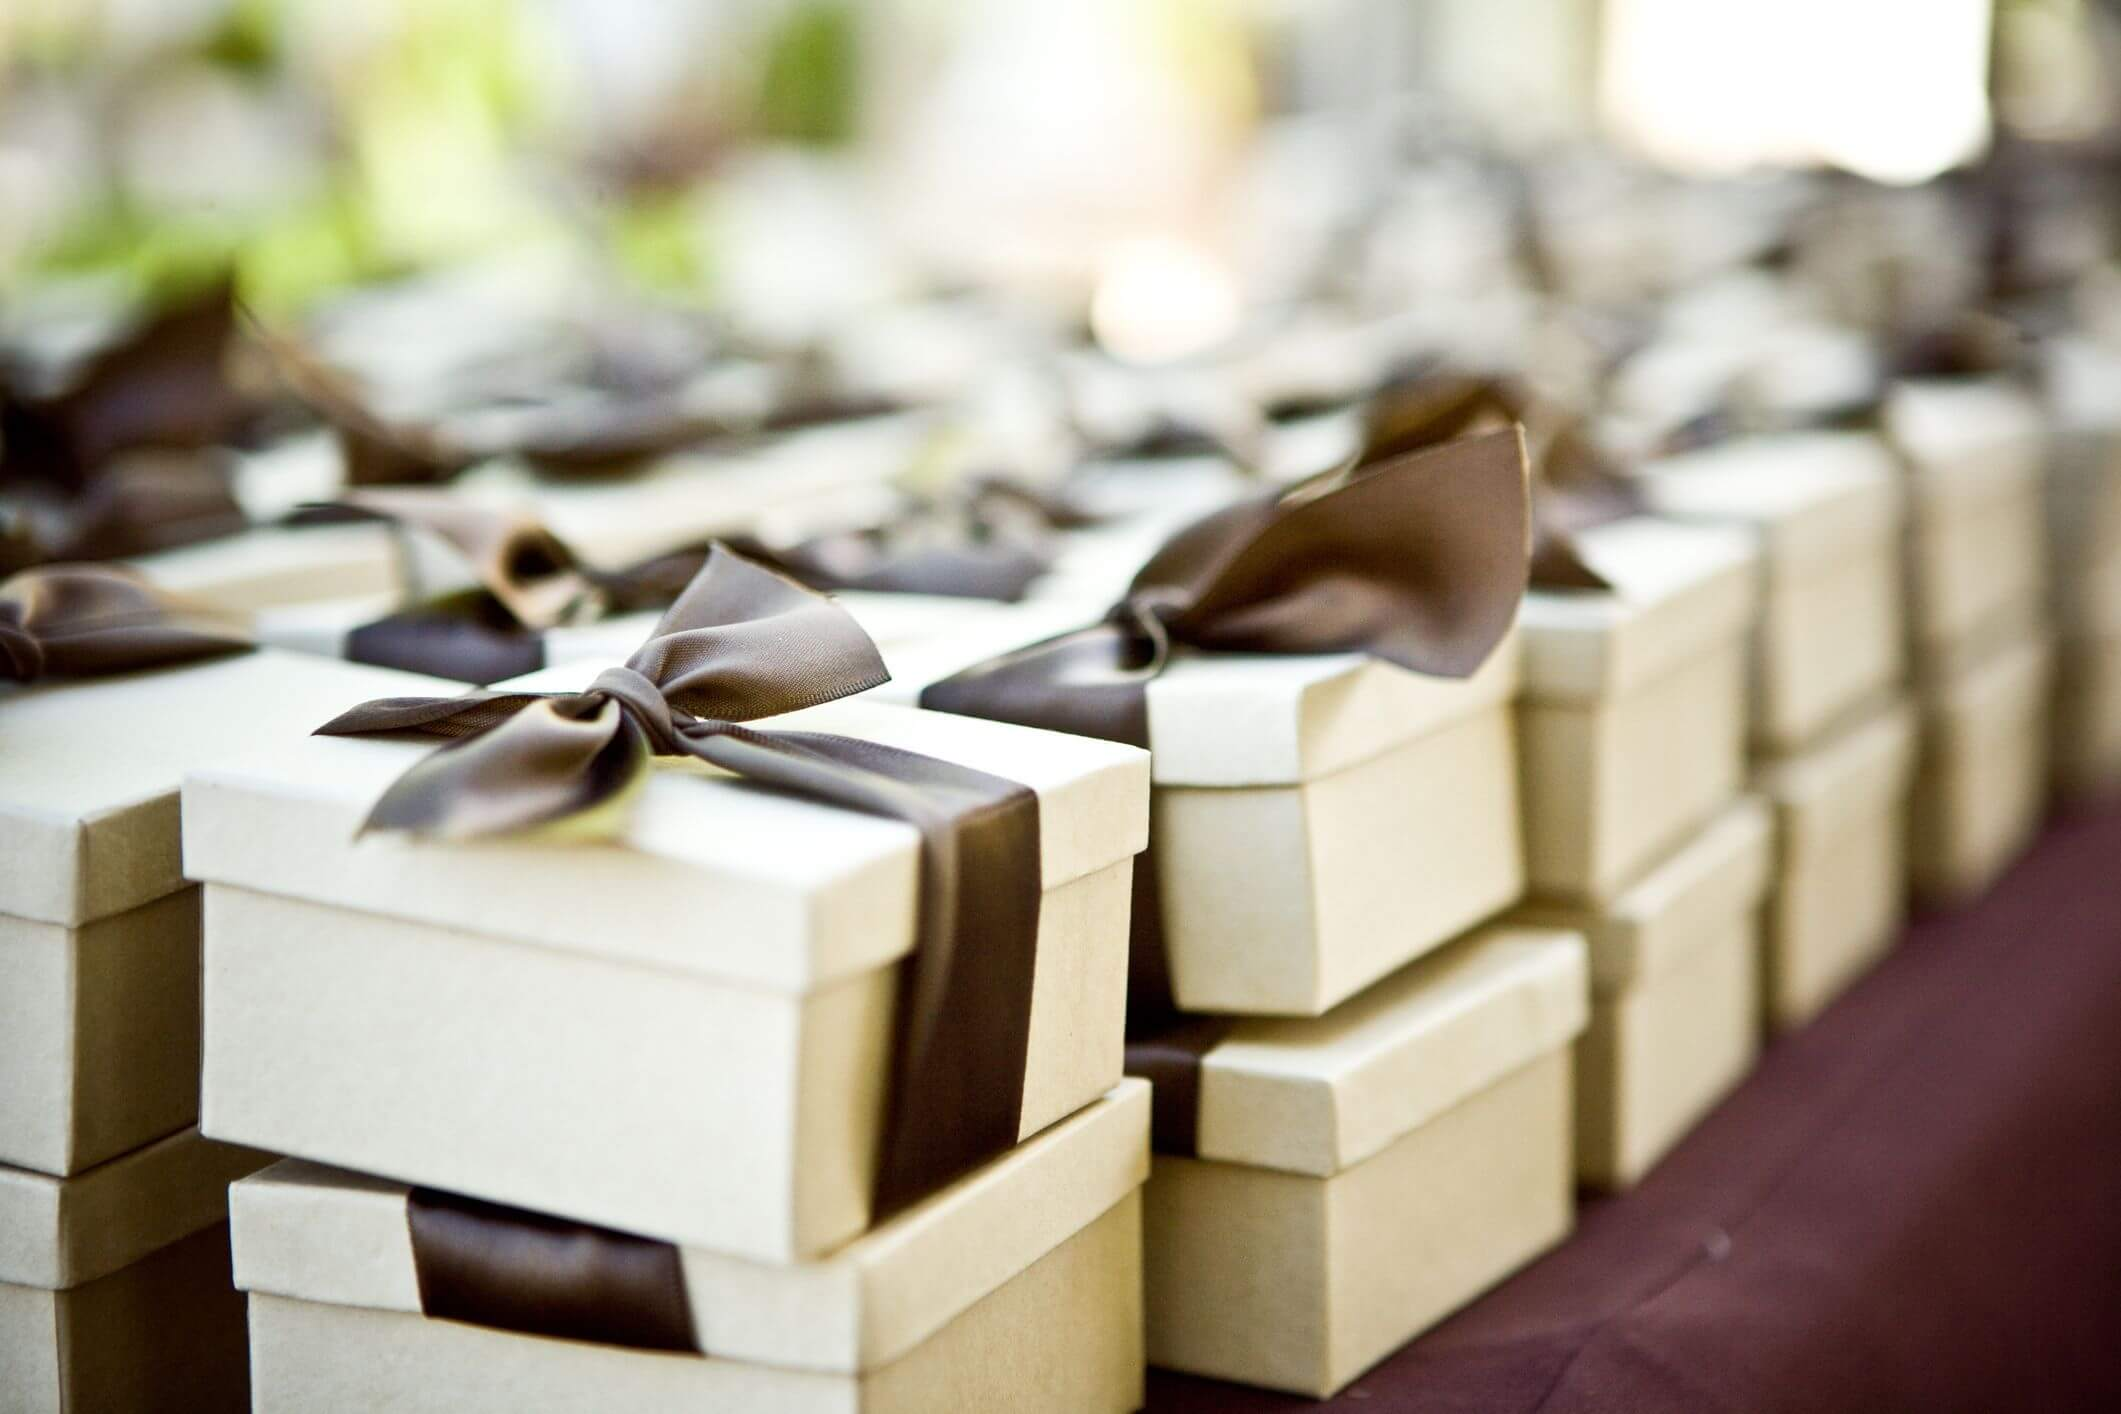 20 Sweet And Cute Wedding Favors For Girls That Can Convey Love